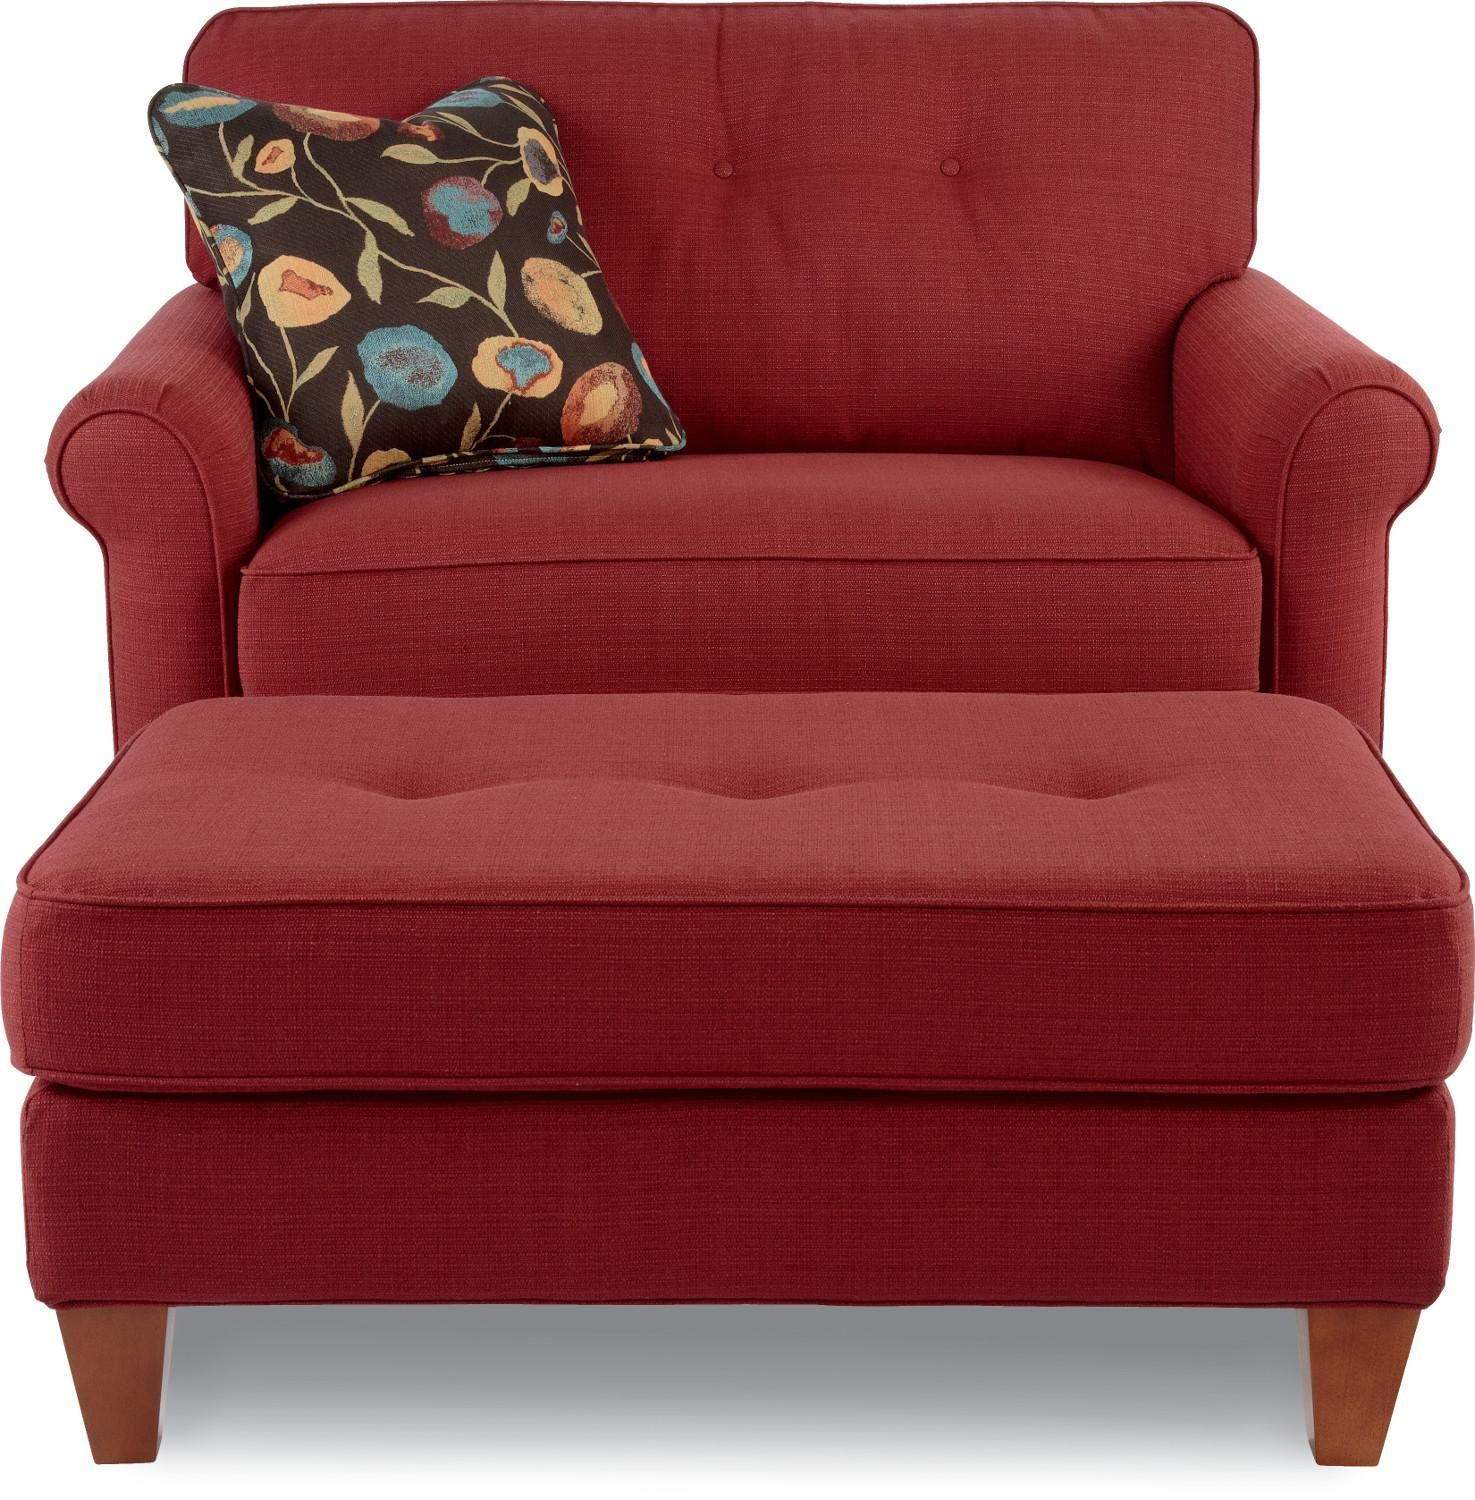 Delicieux How Upholstered Oversized Armchair Decorative   Http://www.studyintl.com/